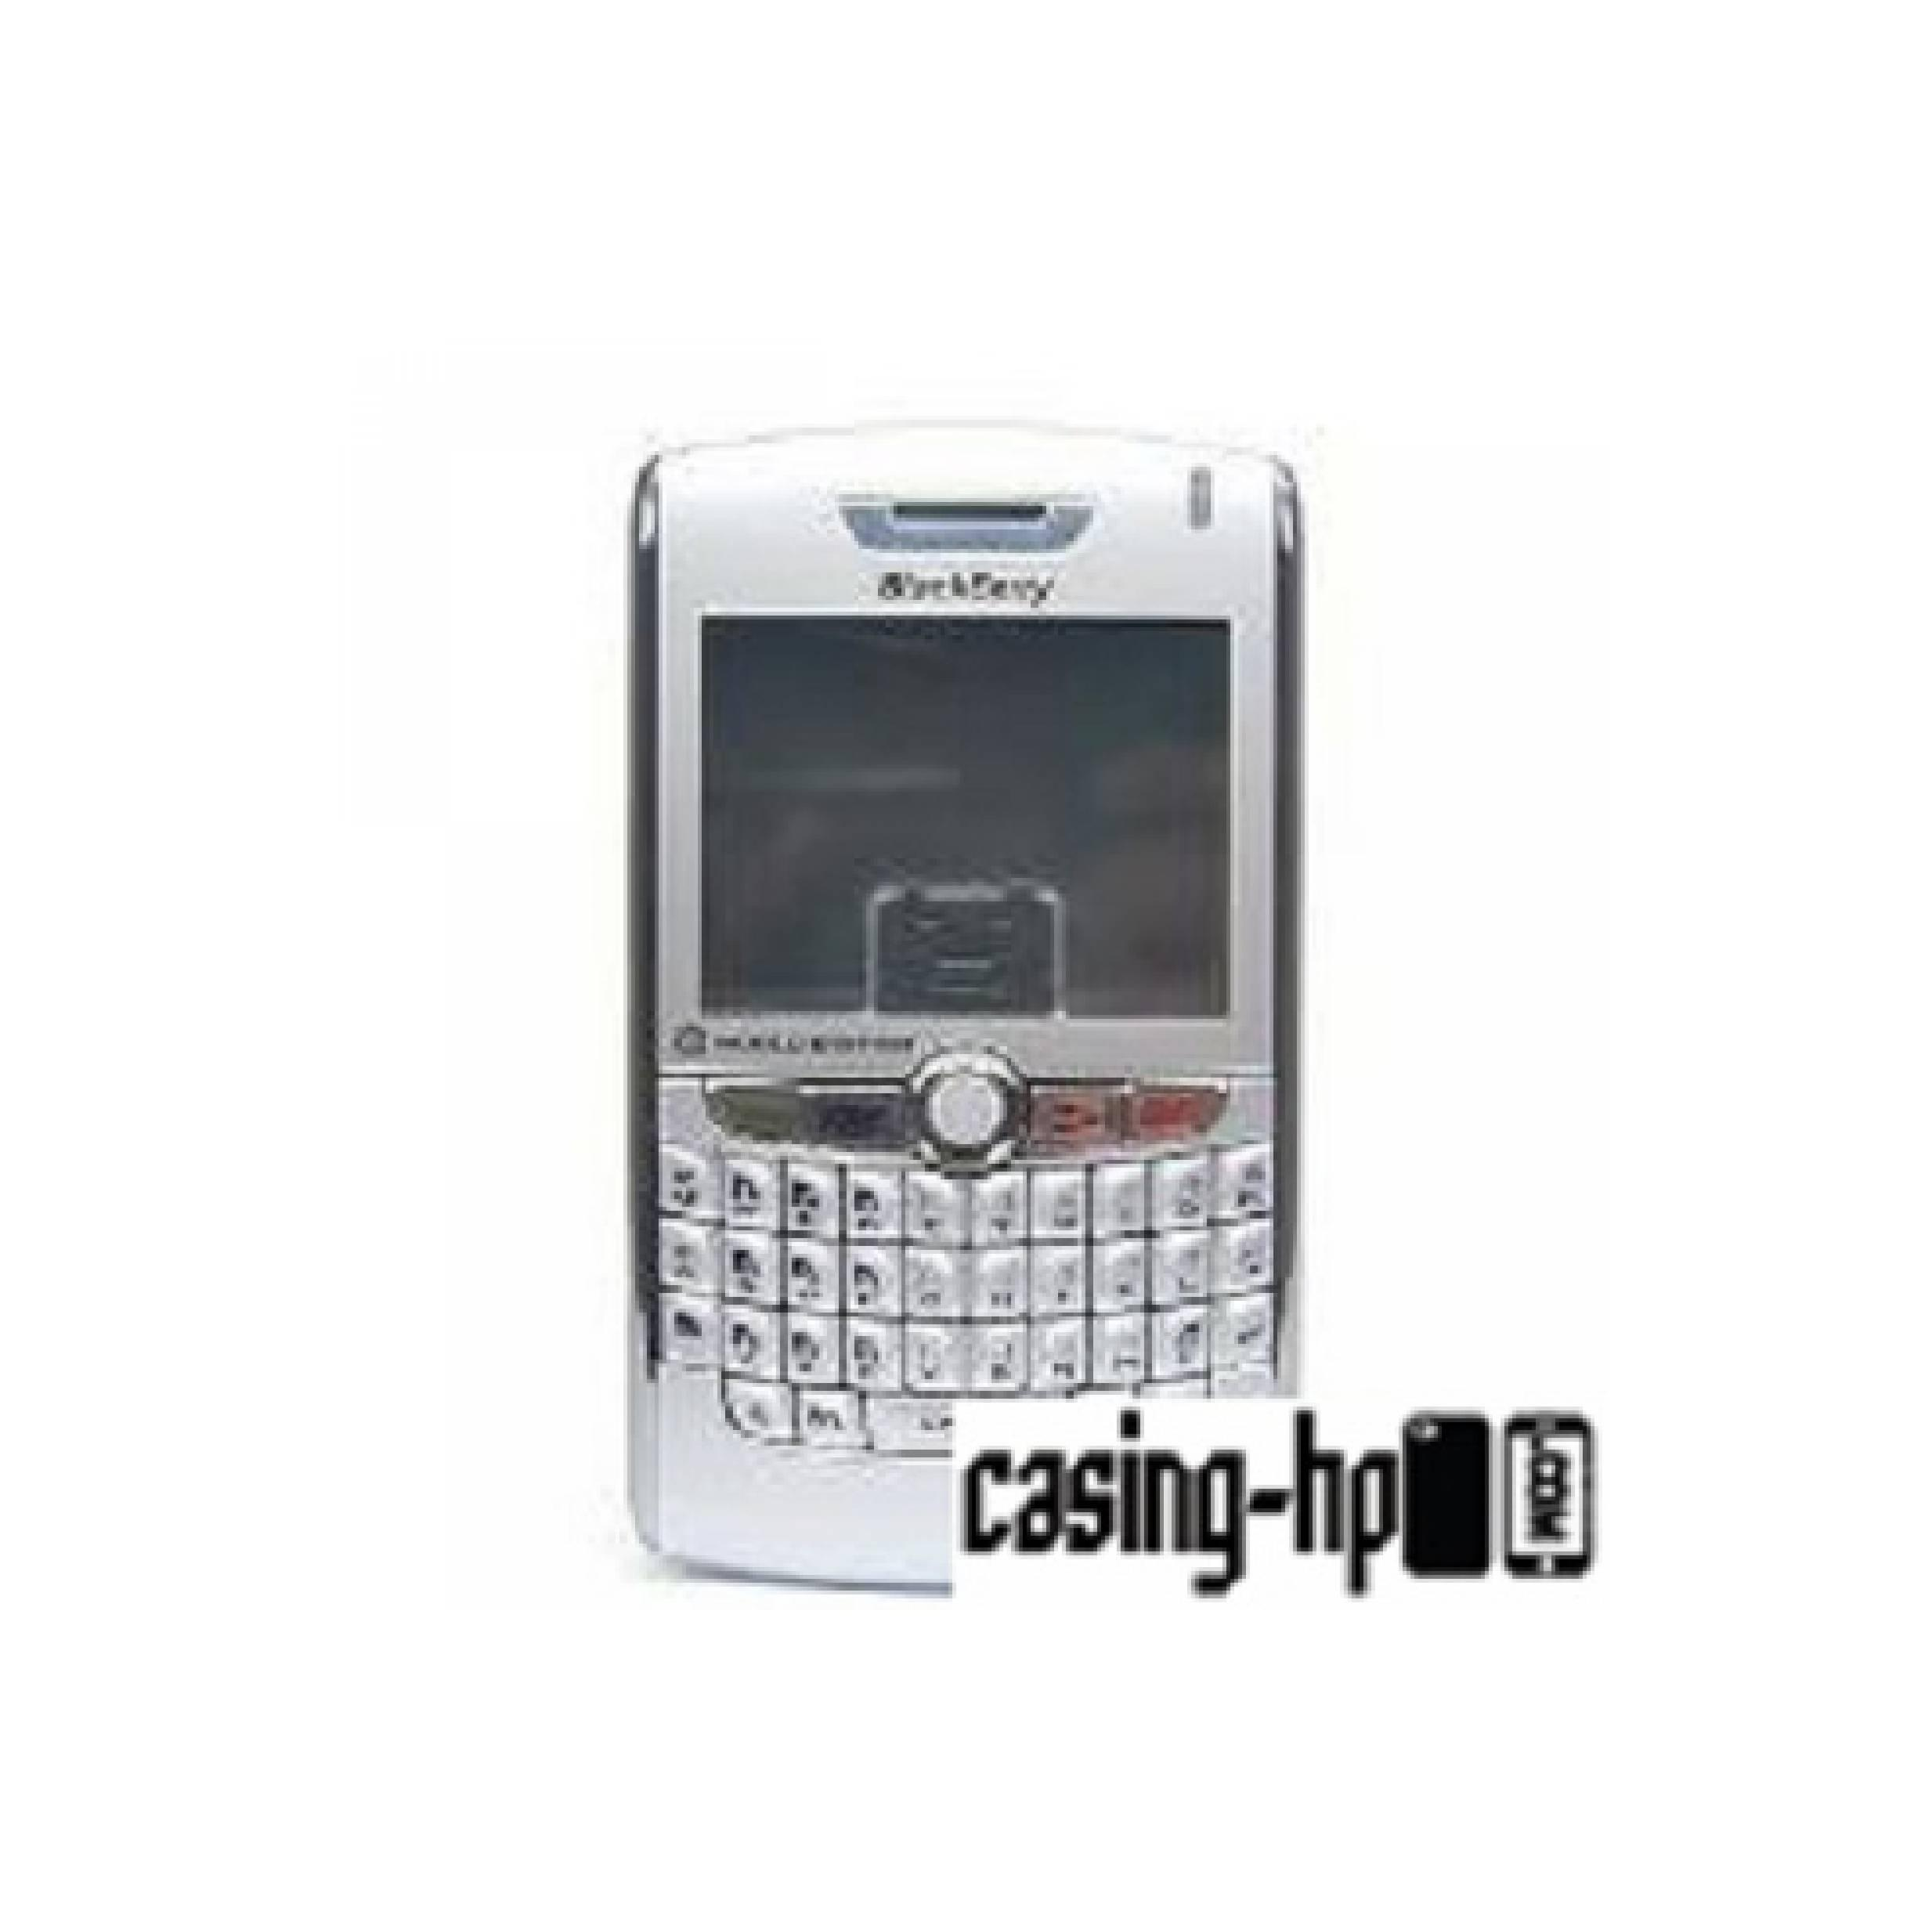 Casing case housing blackberry 8800 SET silver